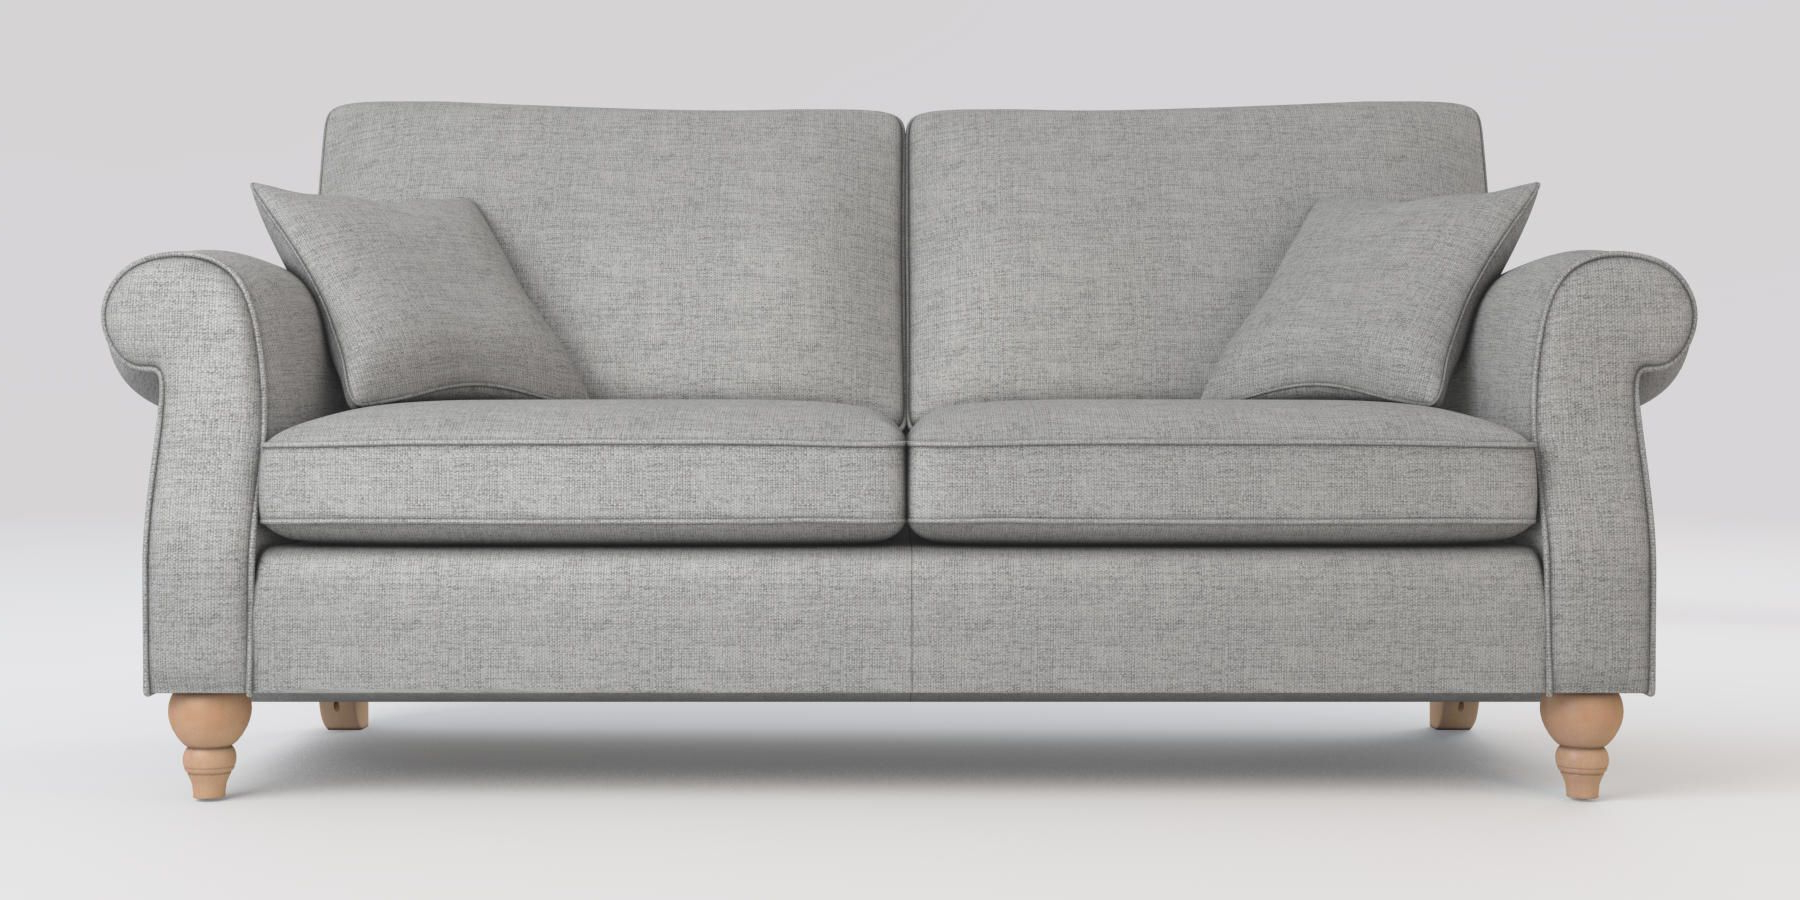 Most Recent Buy Ashford Firm Sit Large Sofa (3 Seats) Textured Weave Within Calvin Concrete Gray Sofas (View 13 of 20)